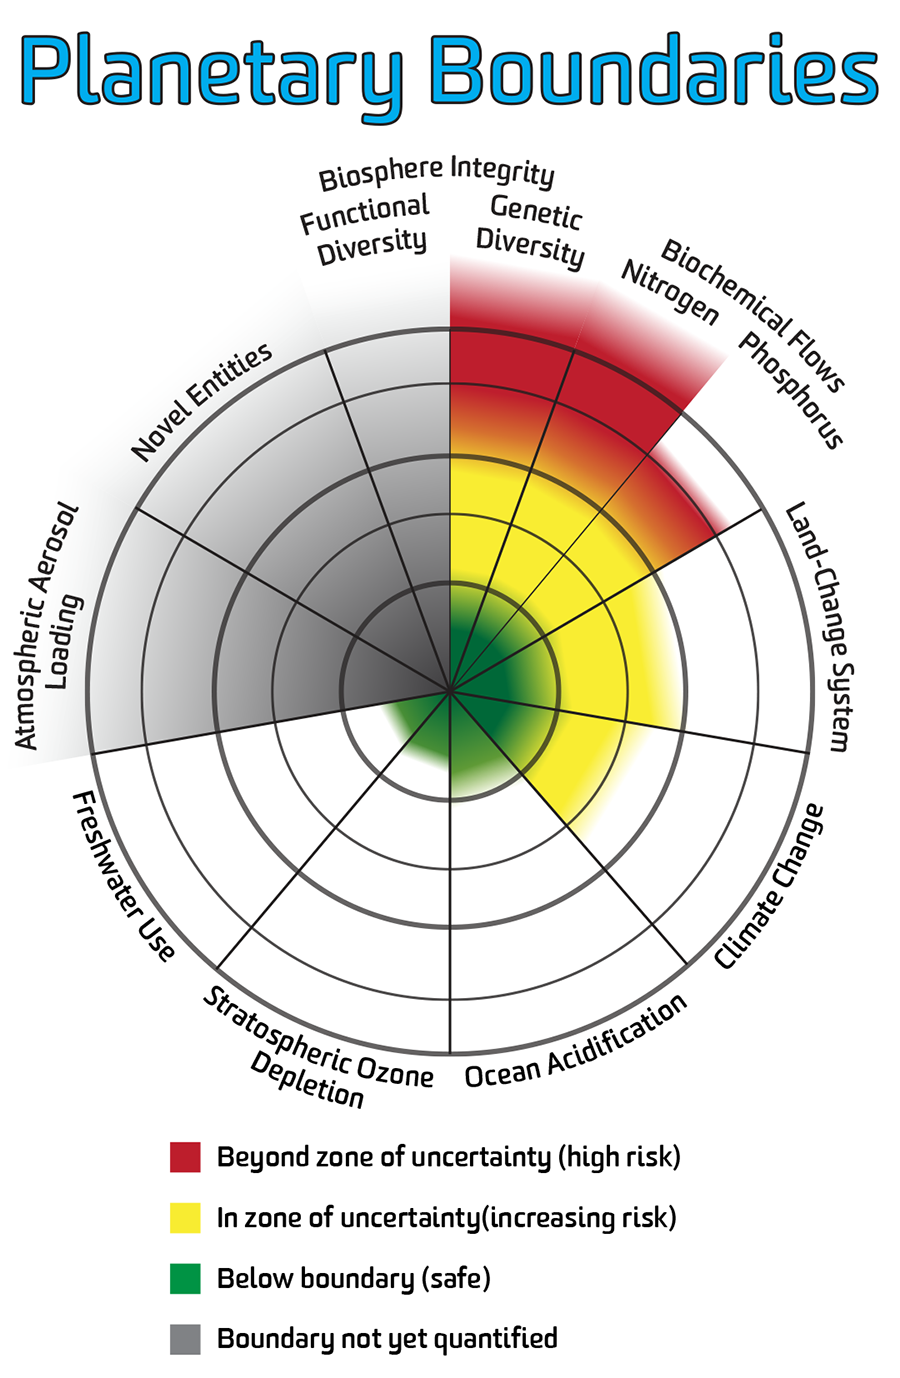 Planetary boundaries infographic, select the image to download an accessible PDF version